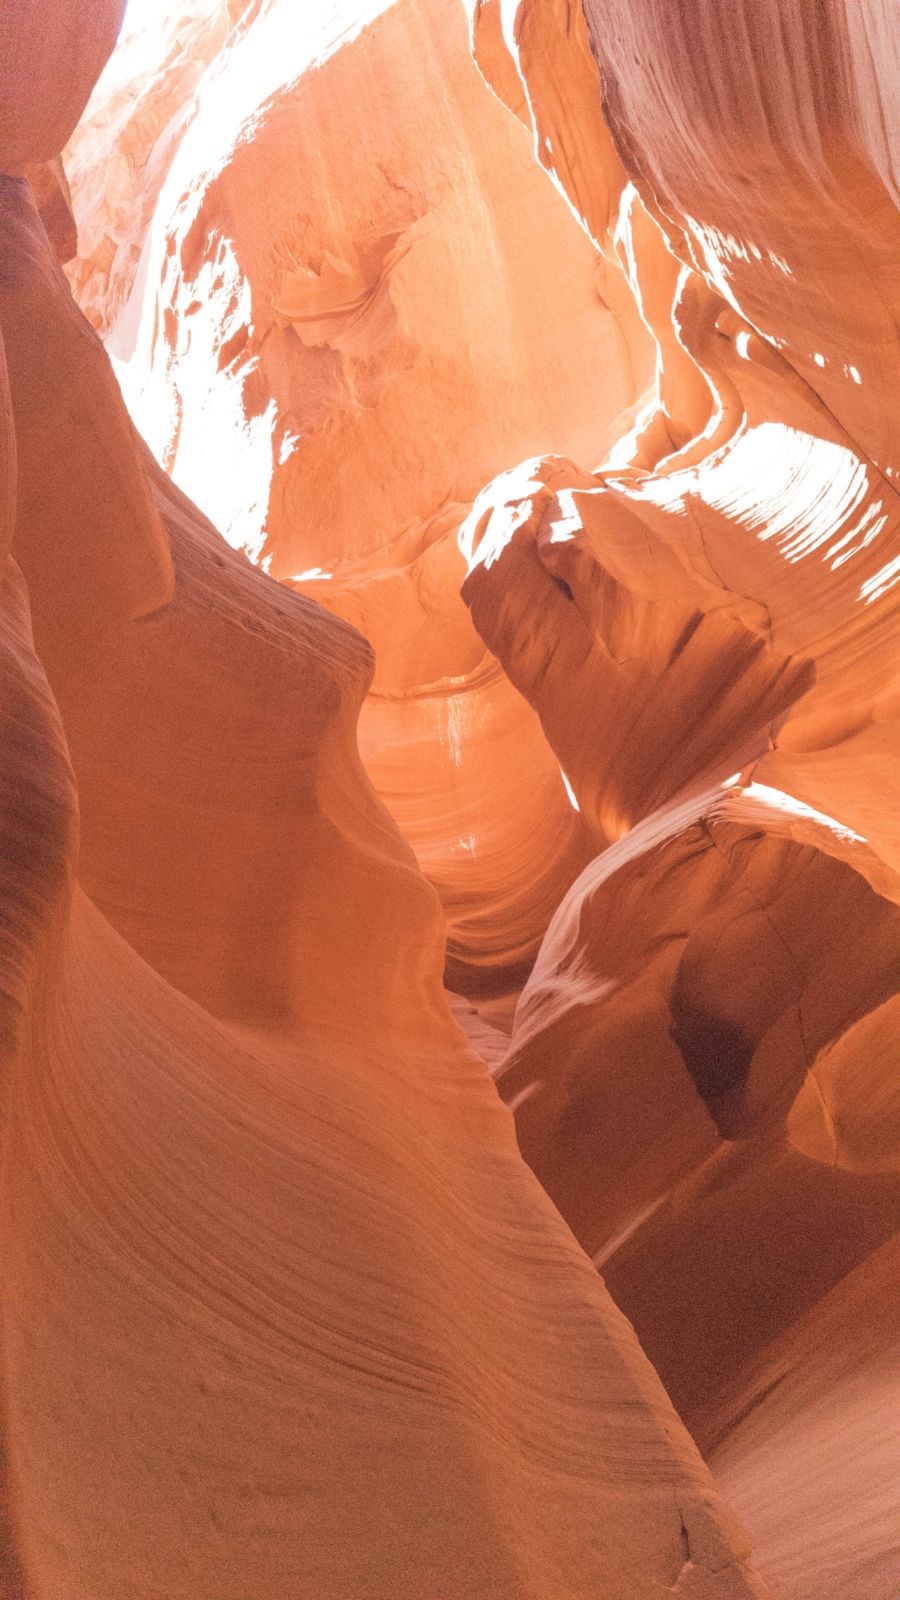 Antelope Canyon X is a quiet alternative to the popular Upper and Lower Antelope Canyon tours. Visiting Antelope Canyon, you'll see limestone canyon walls with lines in them that have been formed by erosion.